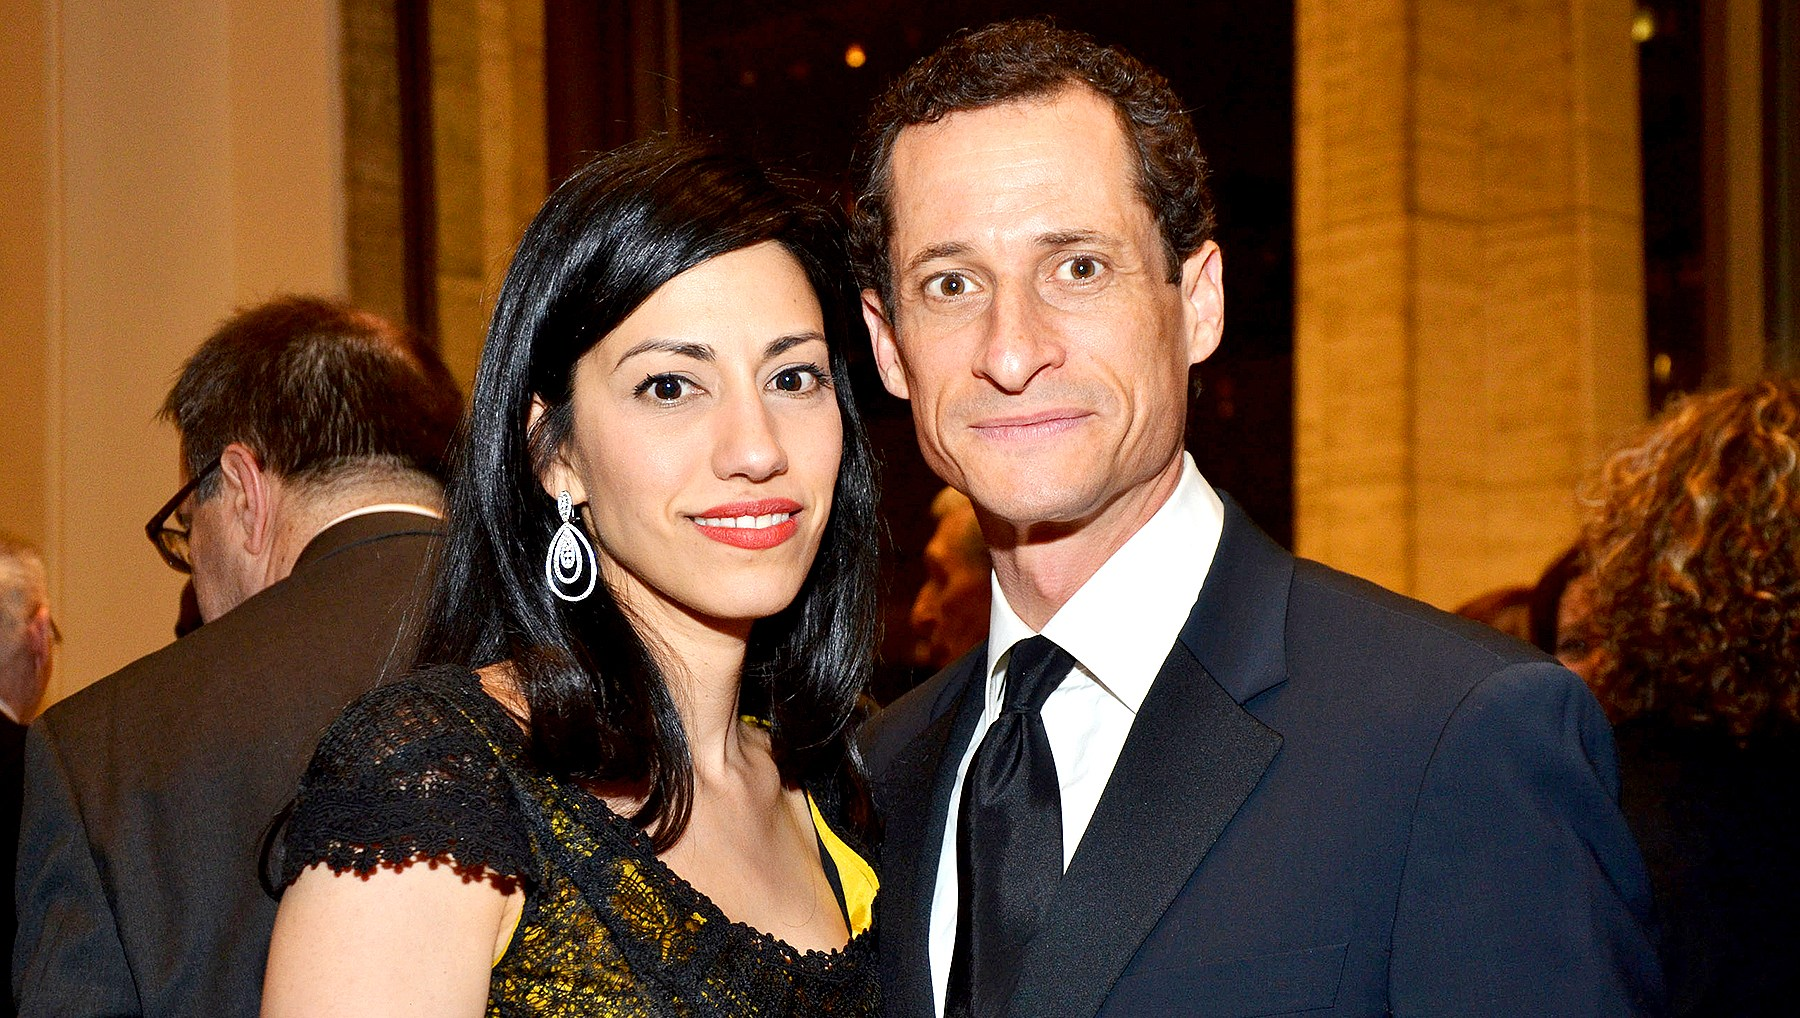 Anthony-Weiner-and-Huma-Abedin-call-off-divorce